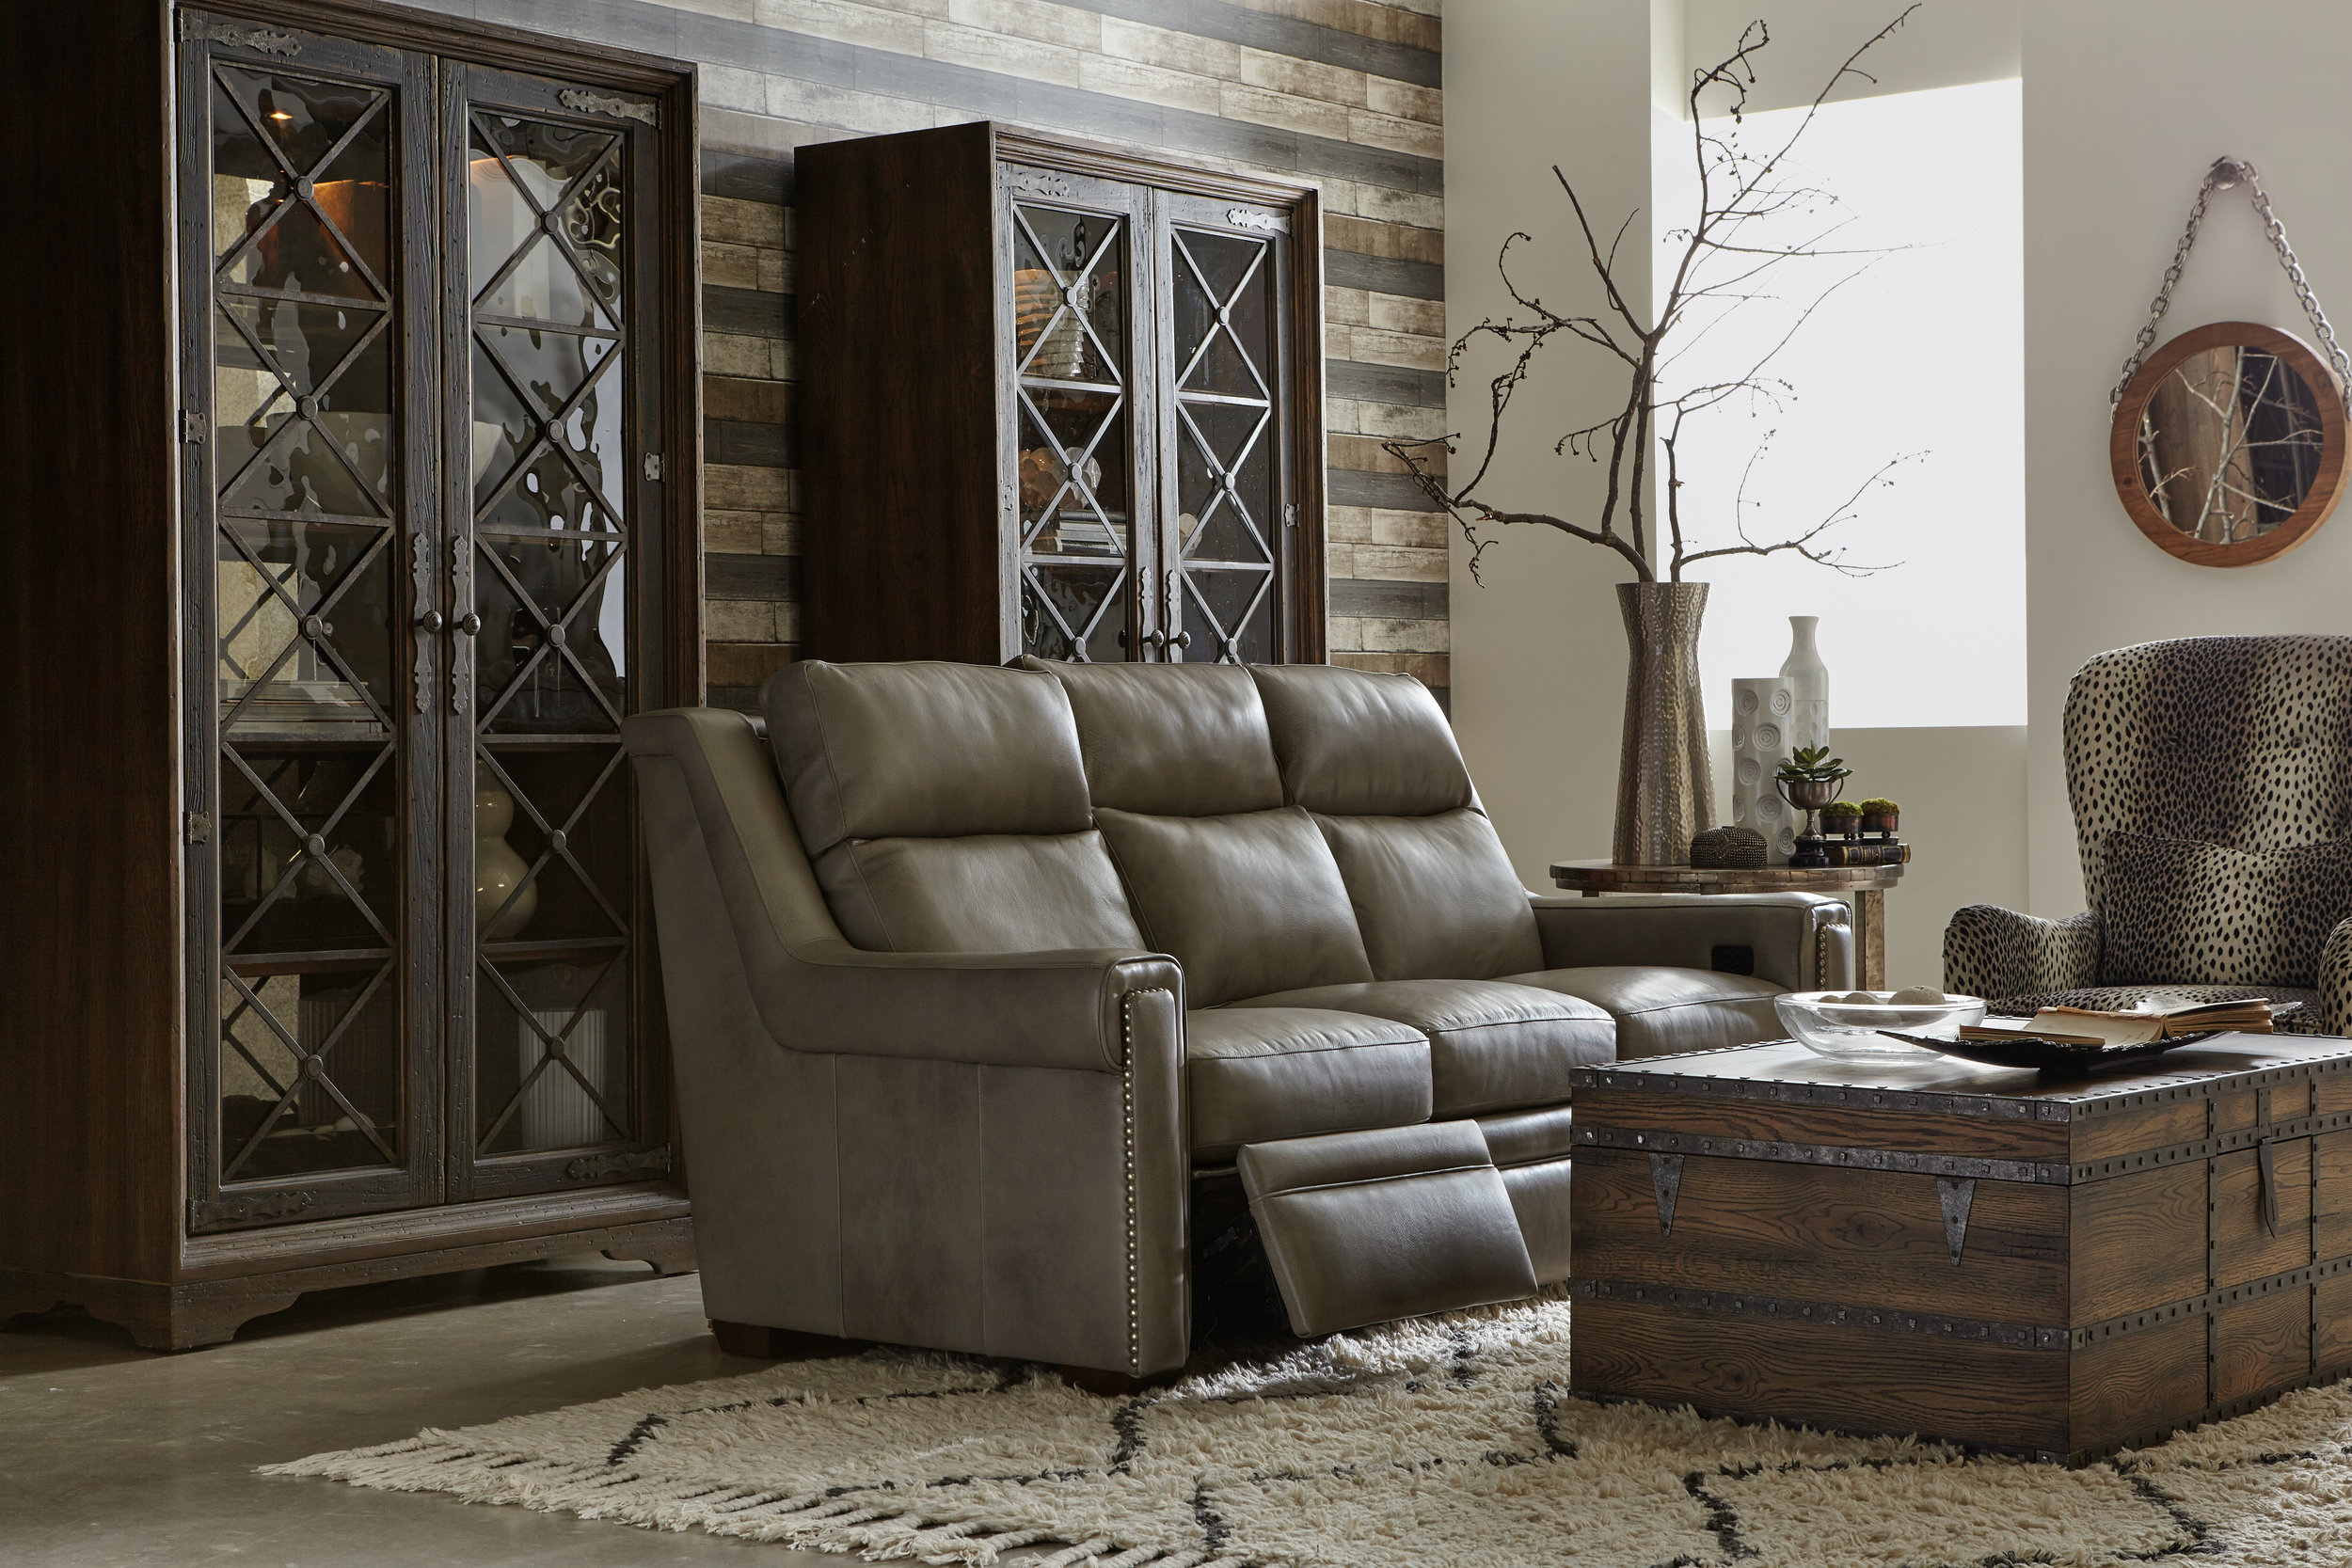 Bakers_Home_Furnishings_Leather.jpg